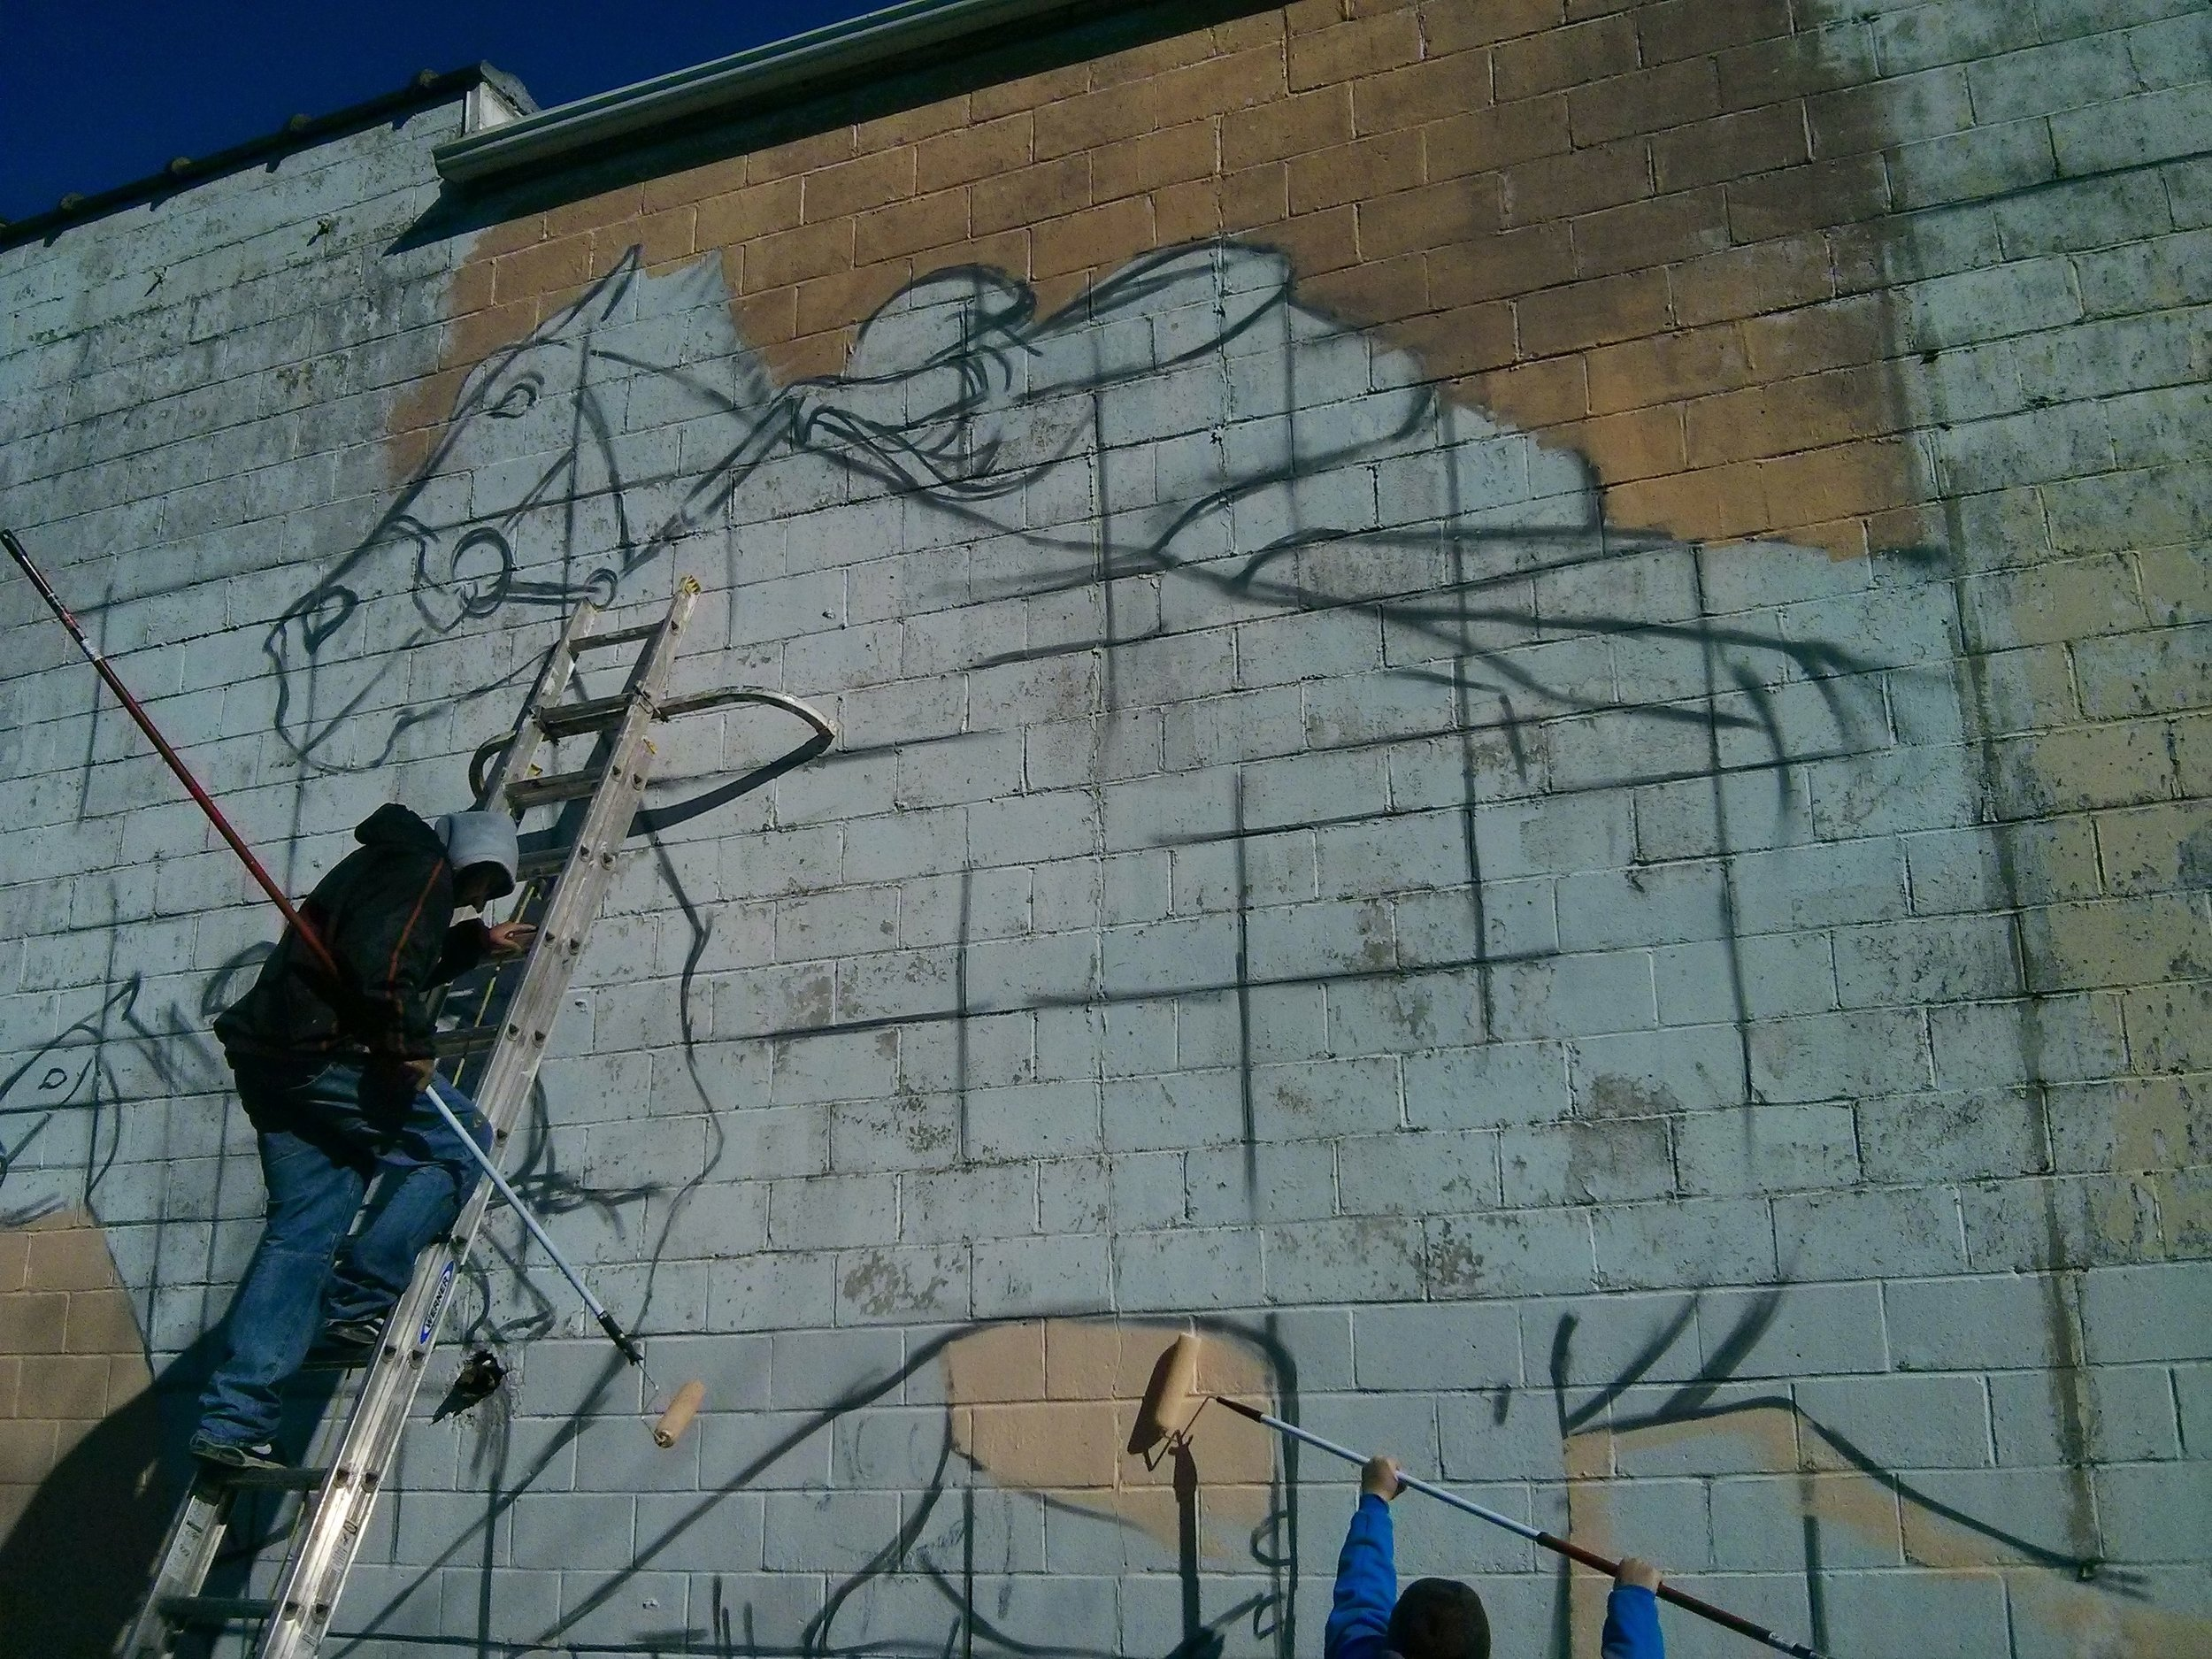 Muralist Odeith installing a   mural in the North End. C  ourtesy: Richard Young